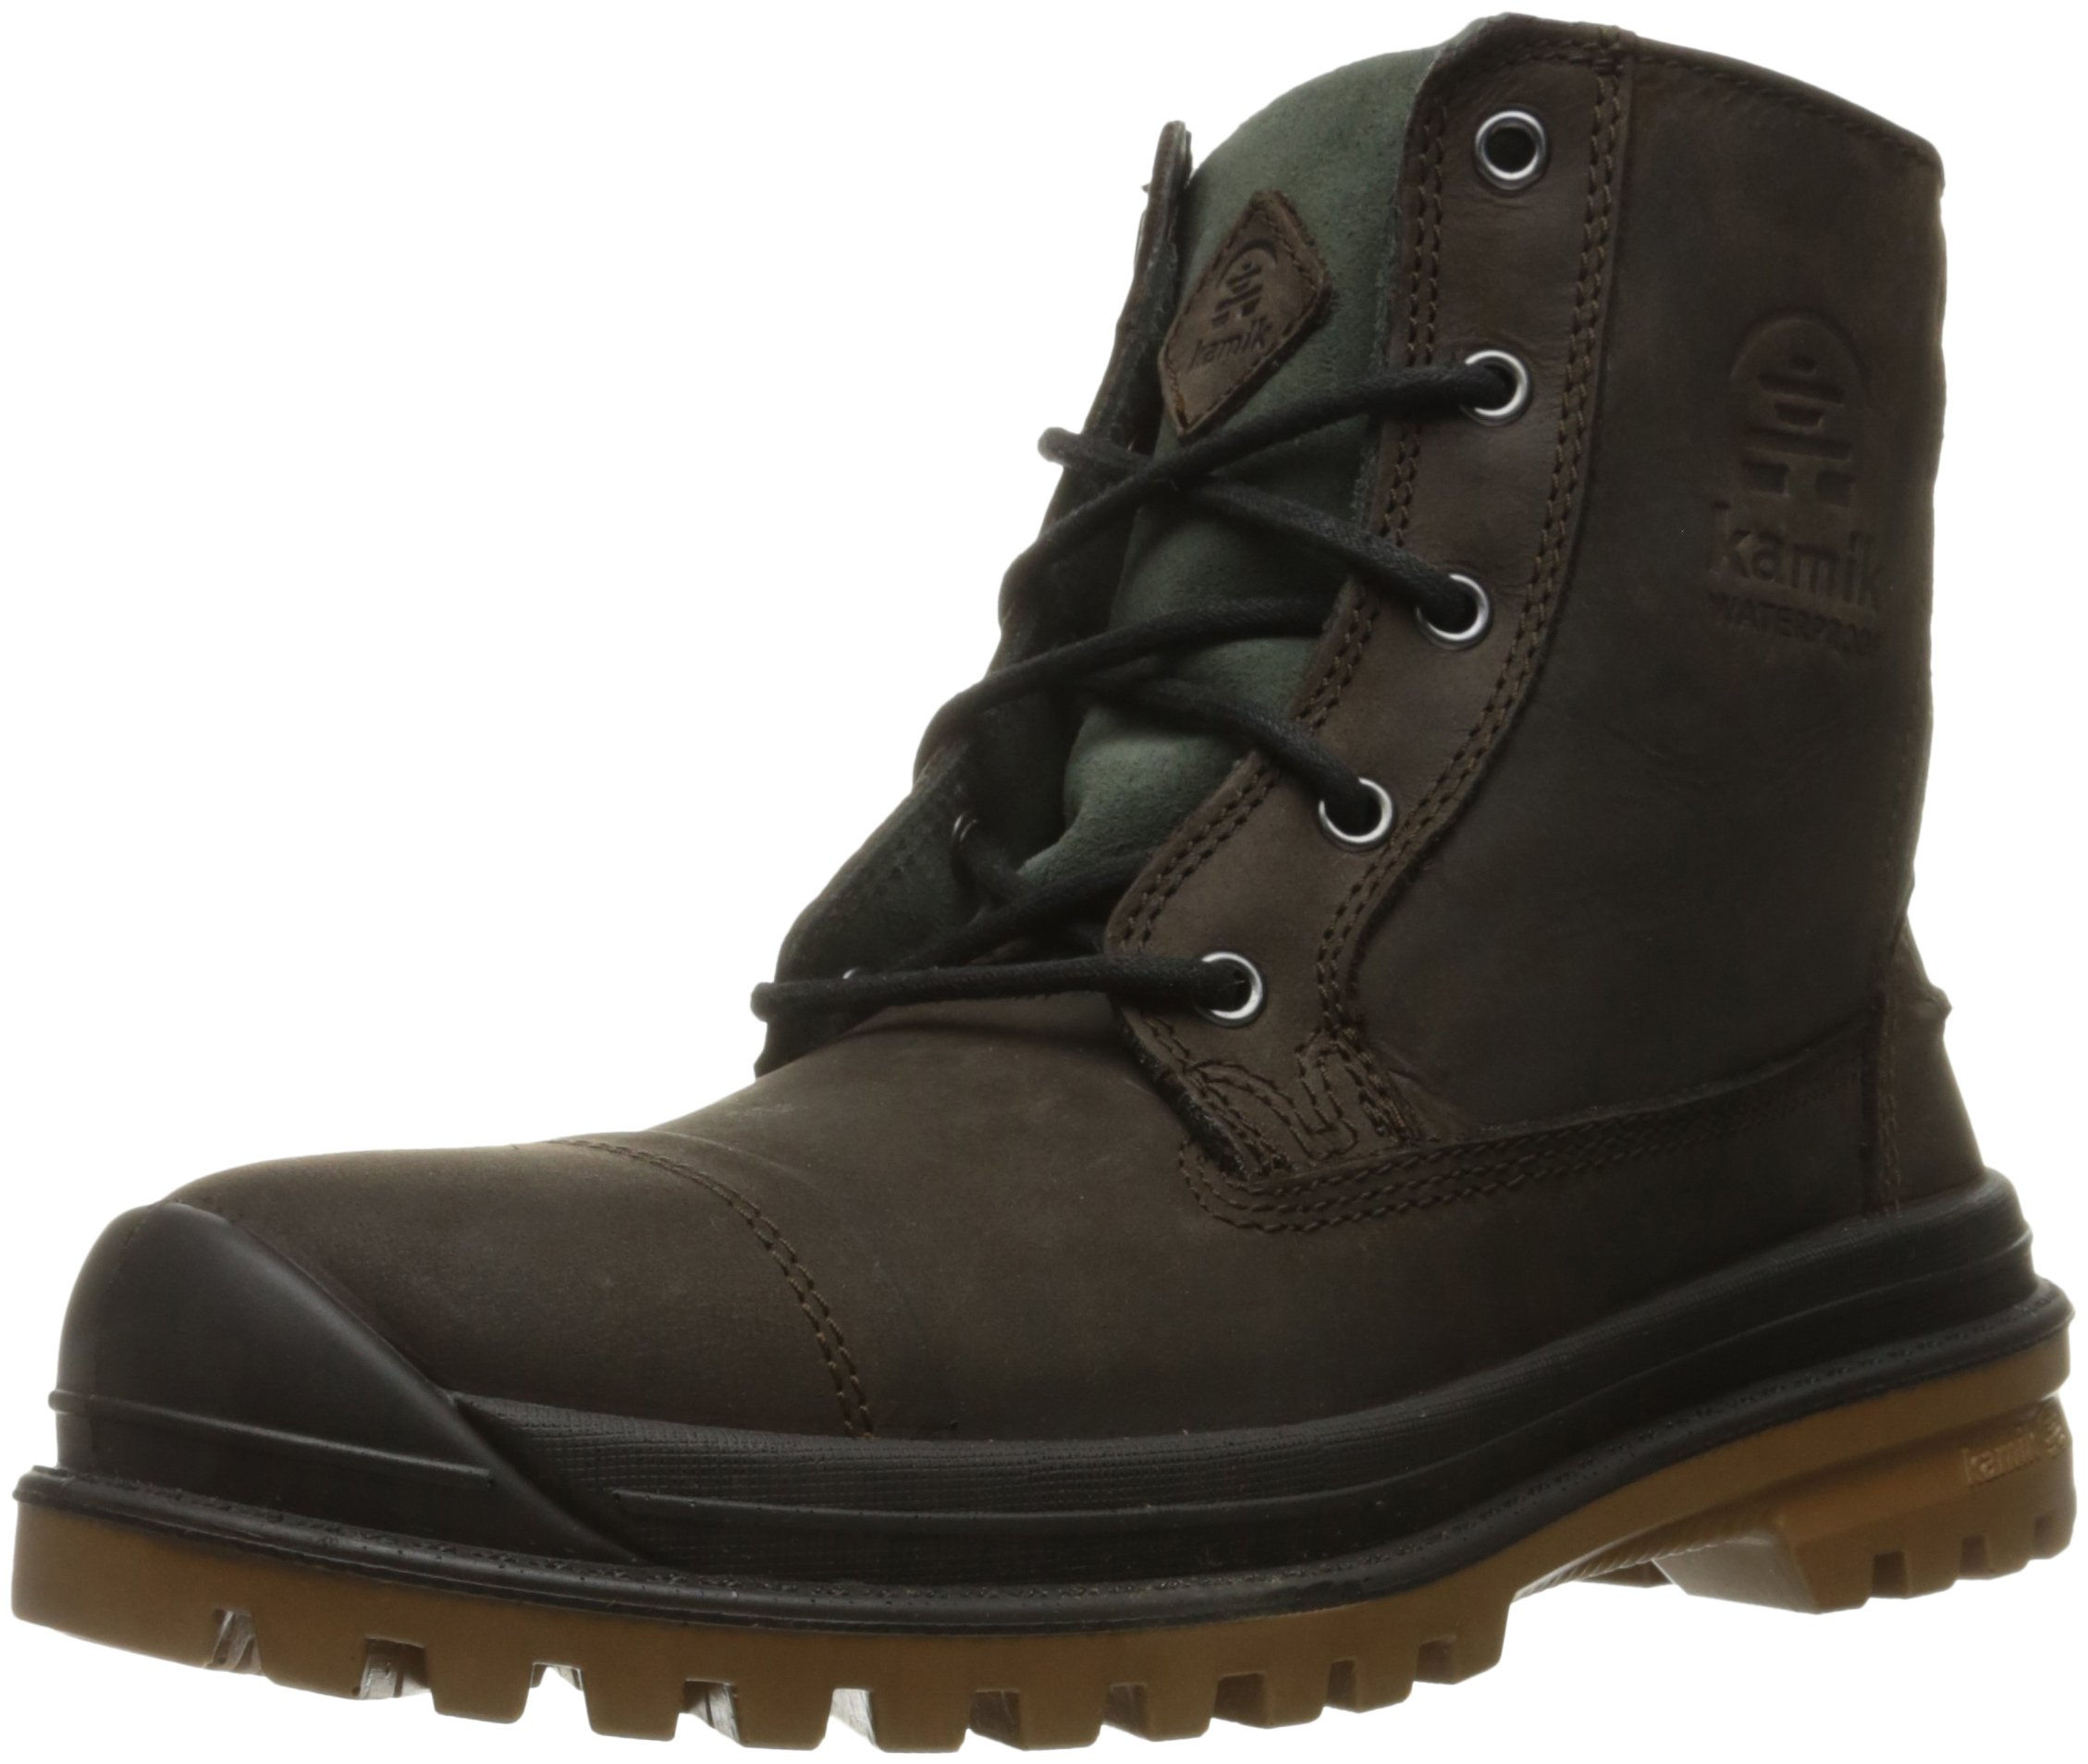 Kamik Men's Griffon Snow Boot, Dark Brown, 12 M US by Kamik